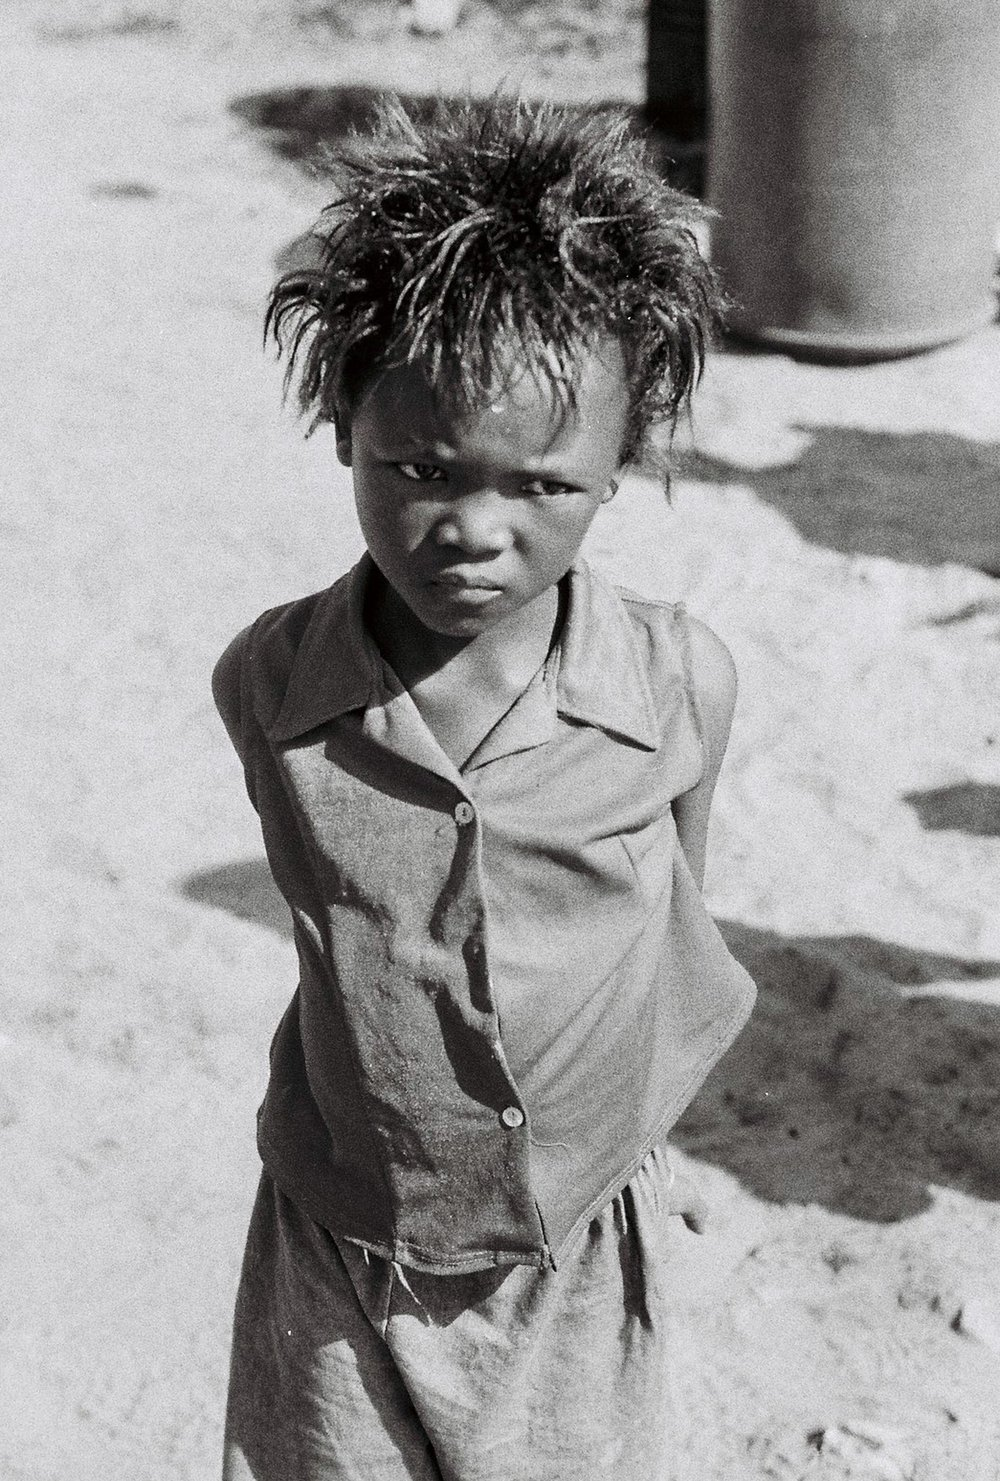 Young Girl, Khayelitsha, South Africa, 2008